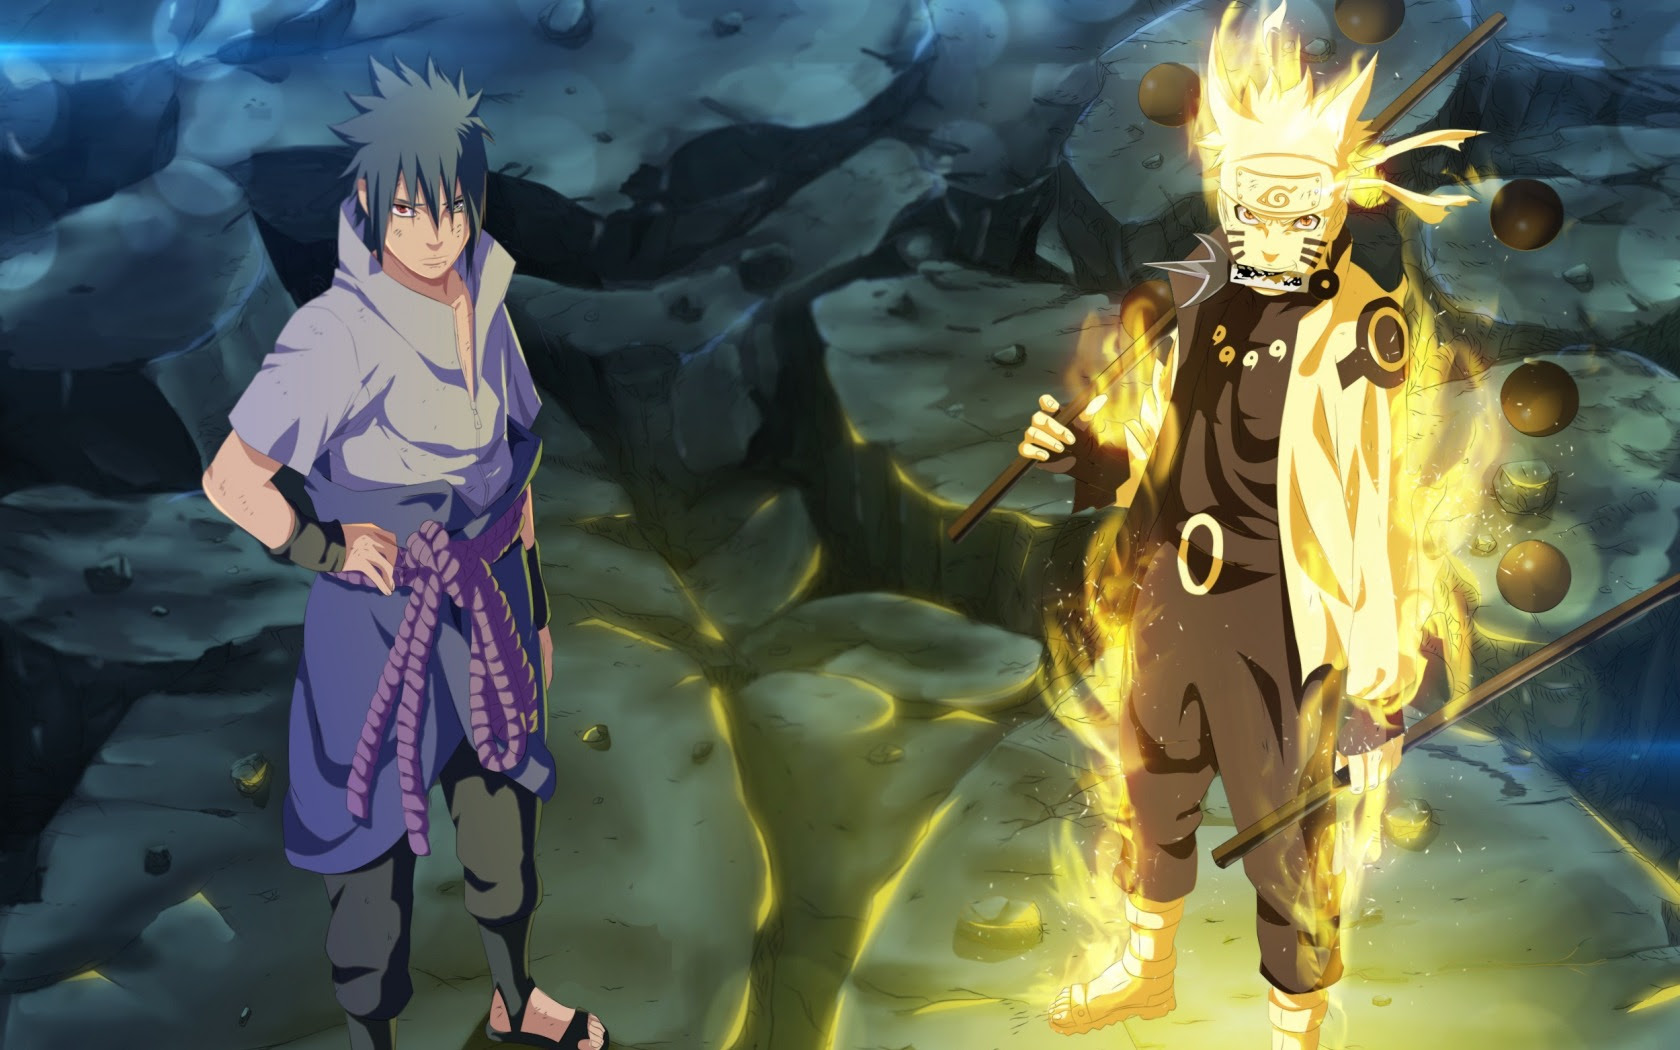 Naruto Shippuden Wallpaper All In One Wallpapers